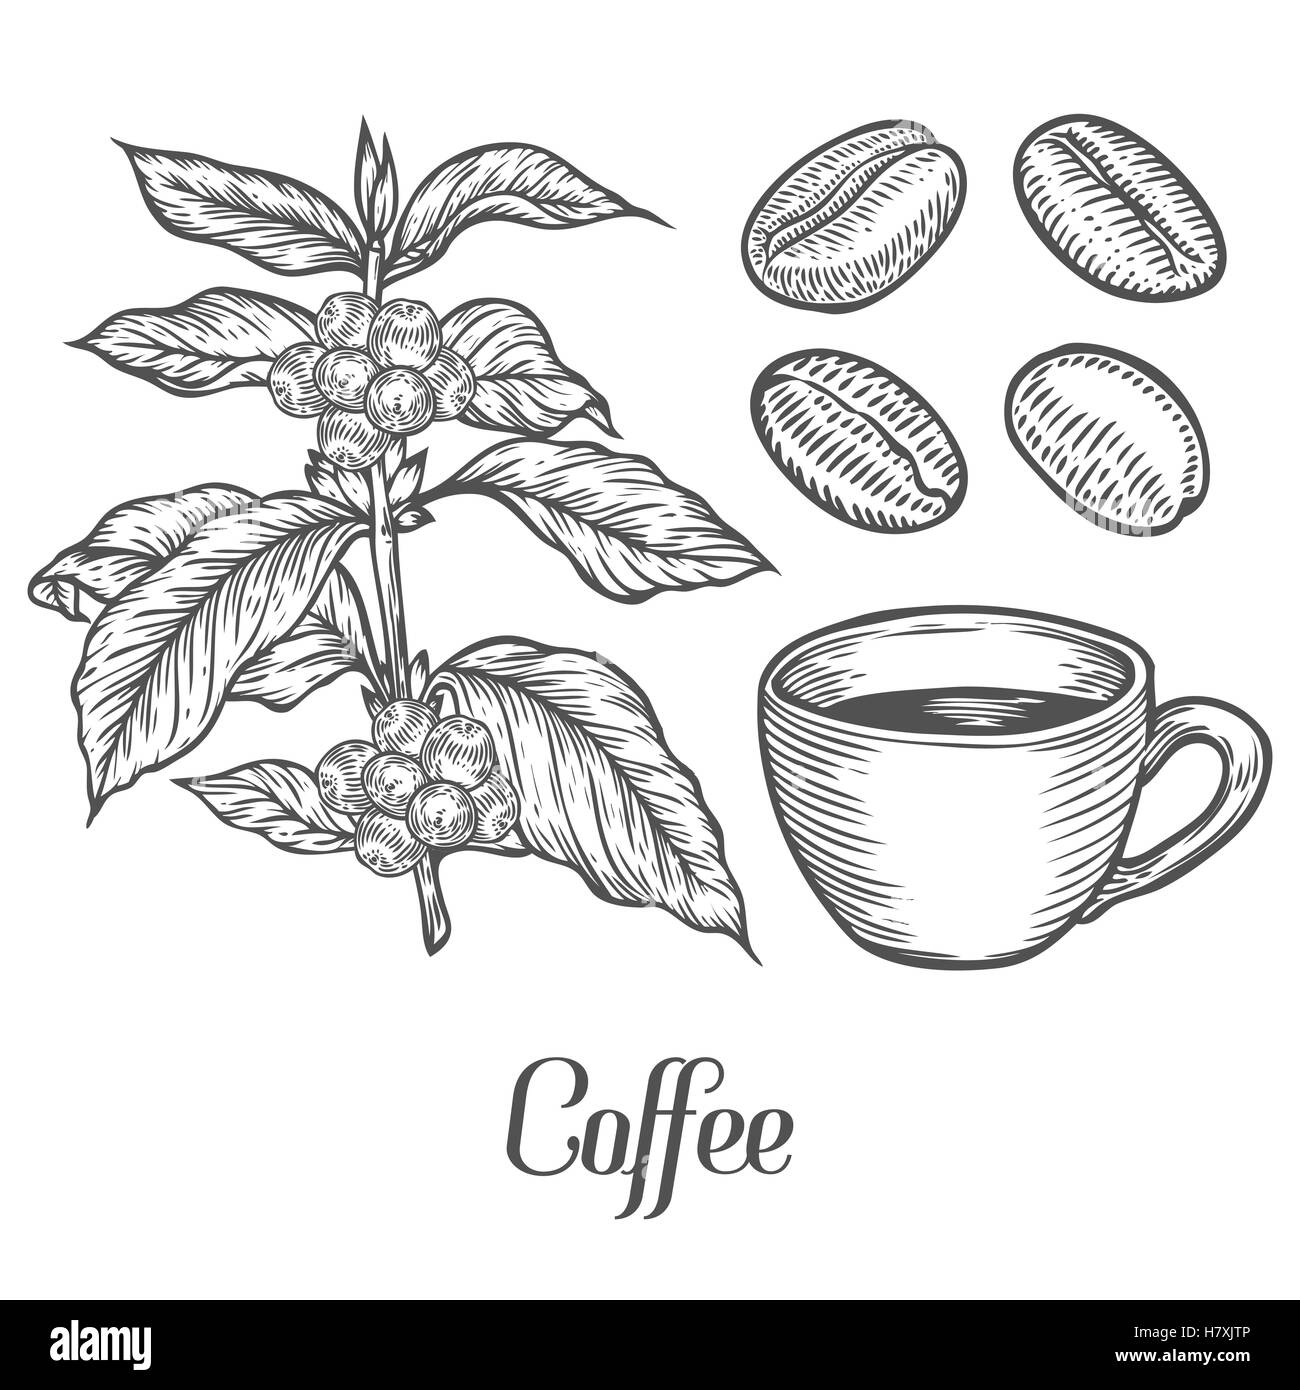 bean seedling diagram 2004 dodge stratus window wiring of a plant best library coffee black and white stock photos images alamy rh com